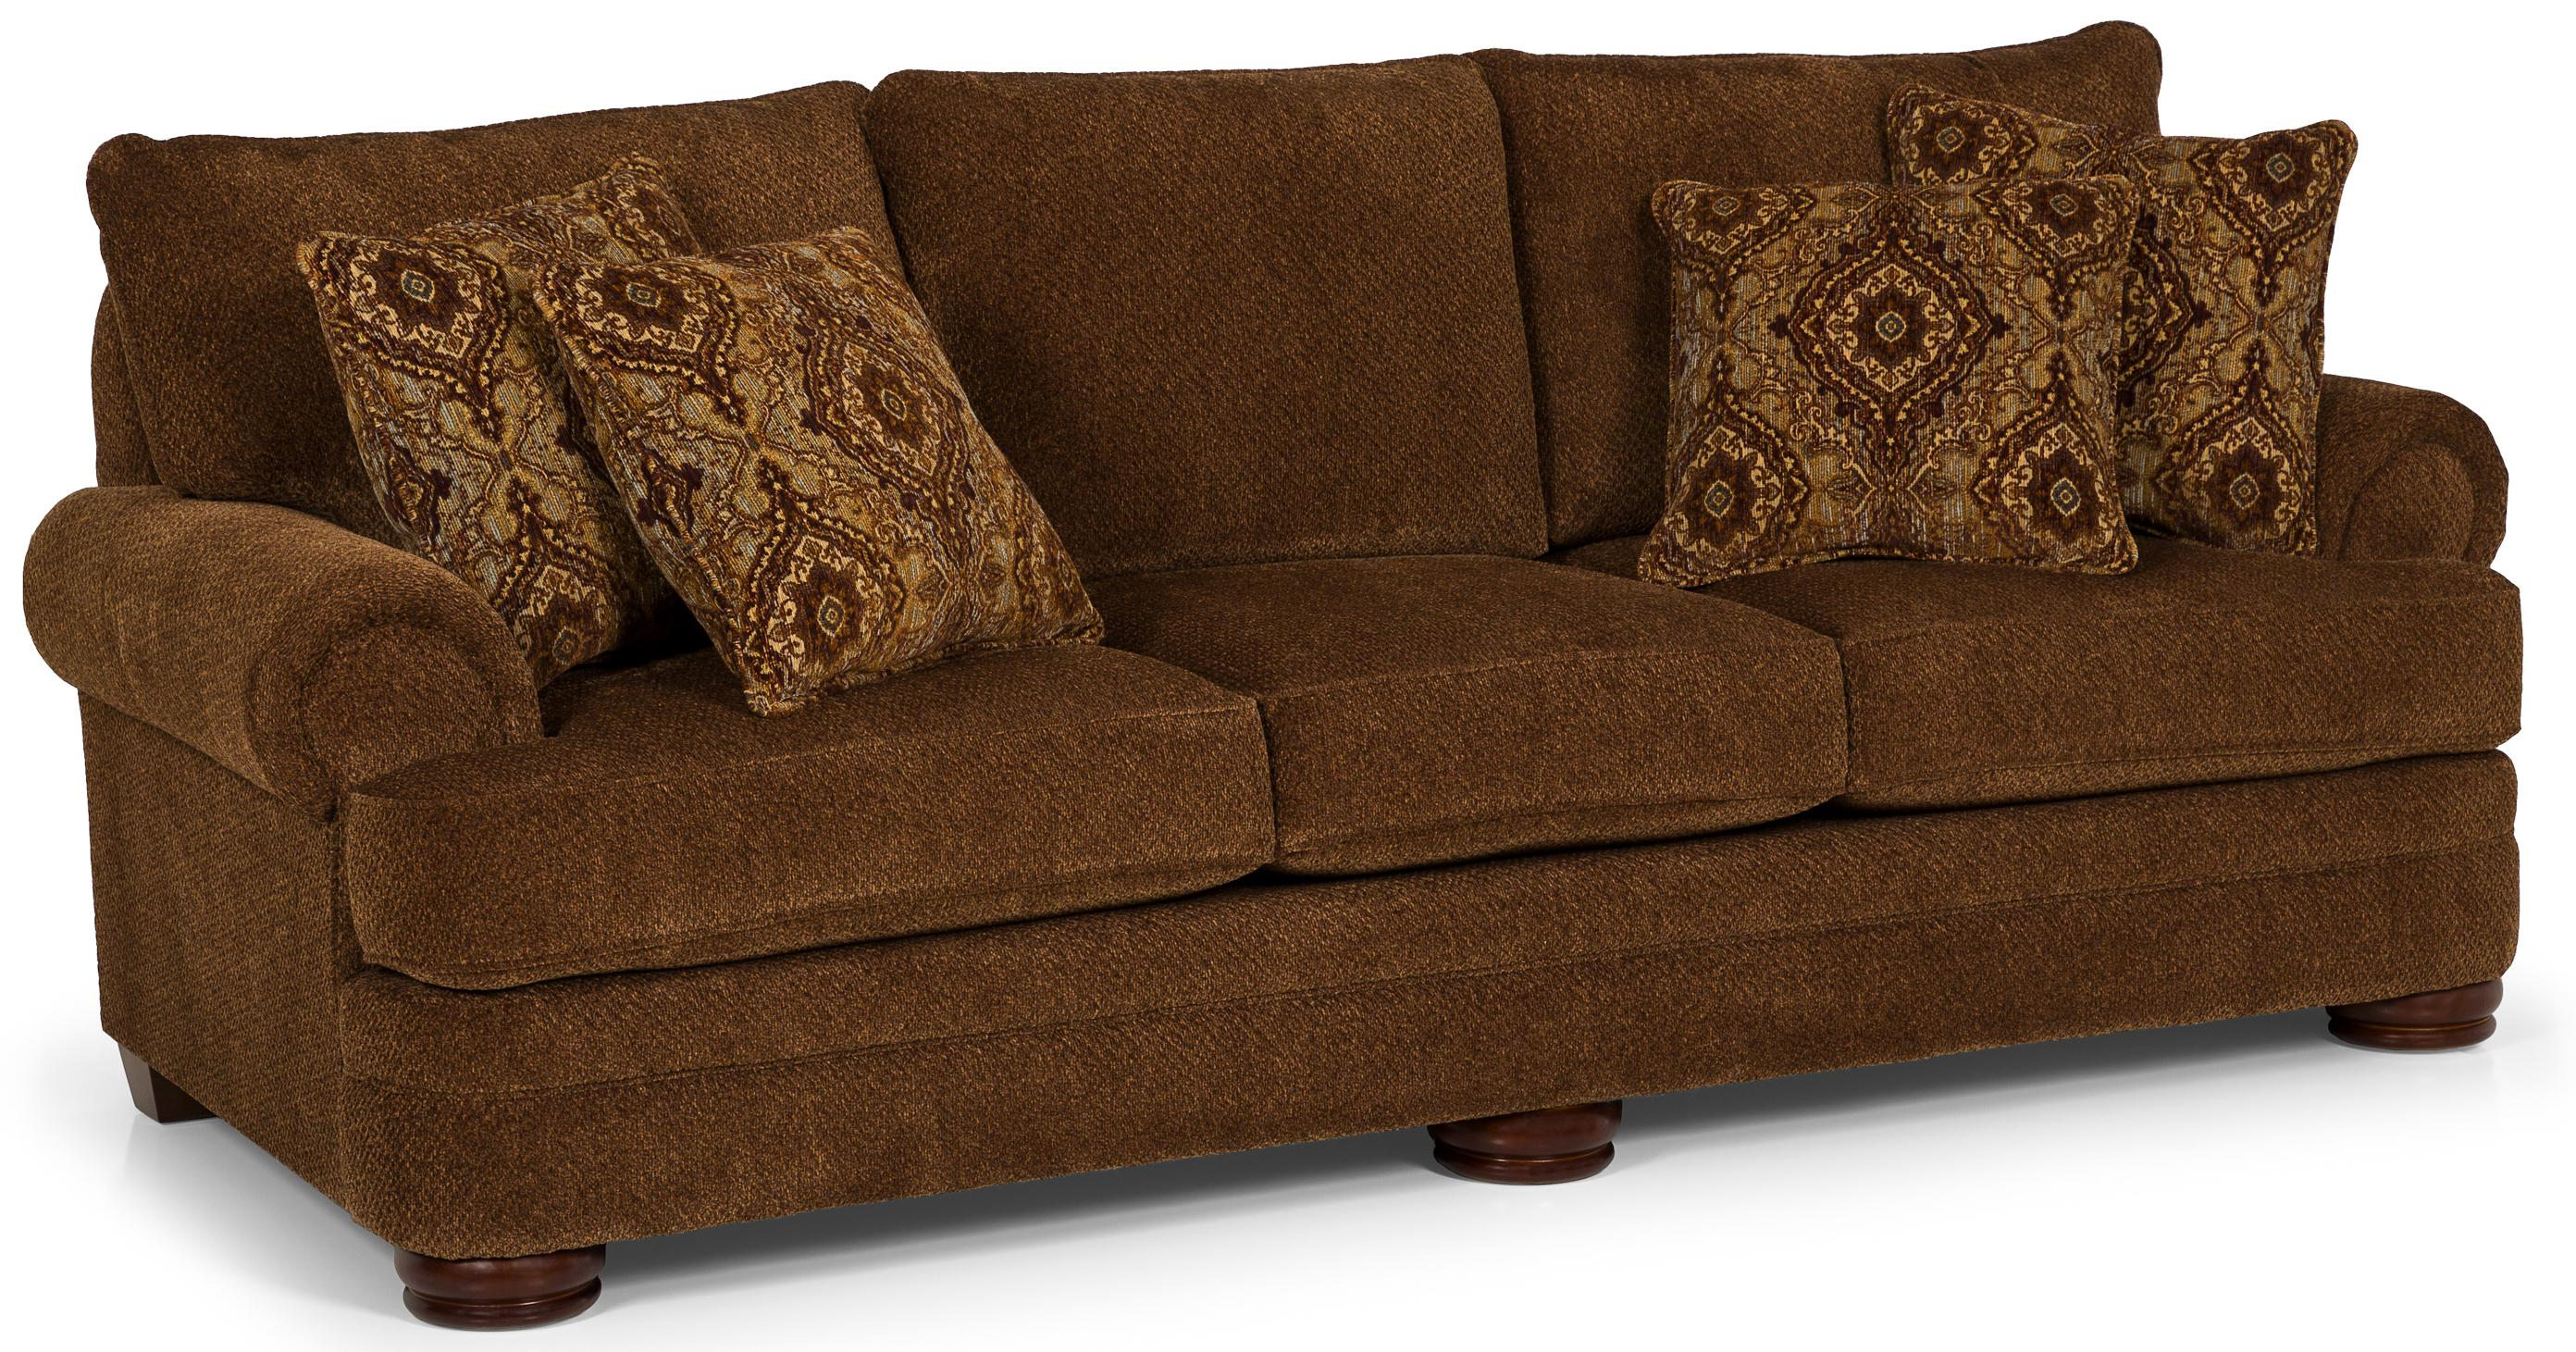 Stanton 213 Traditional Sofa - Item Number: 21301